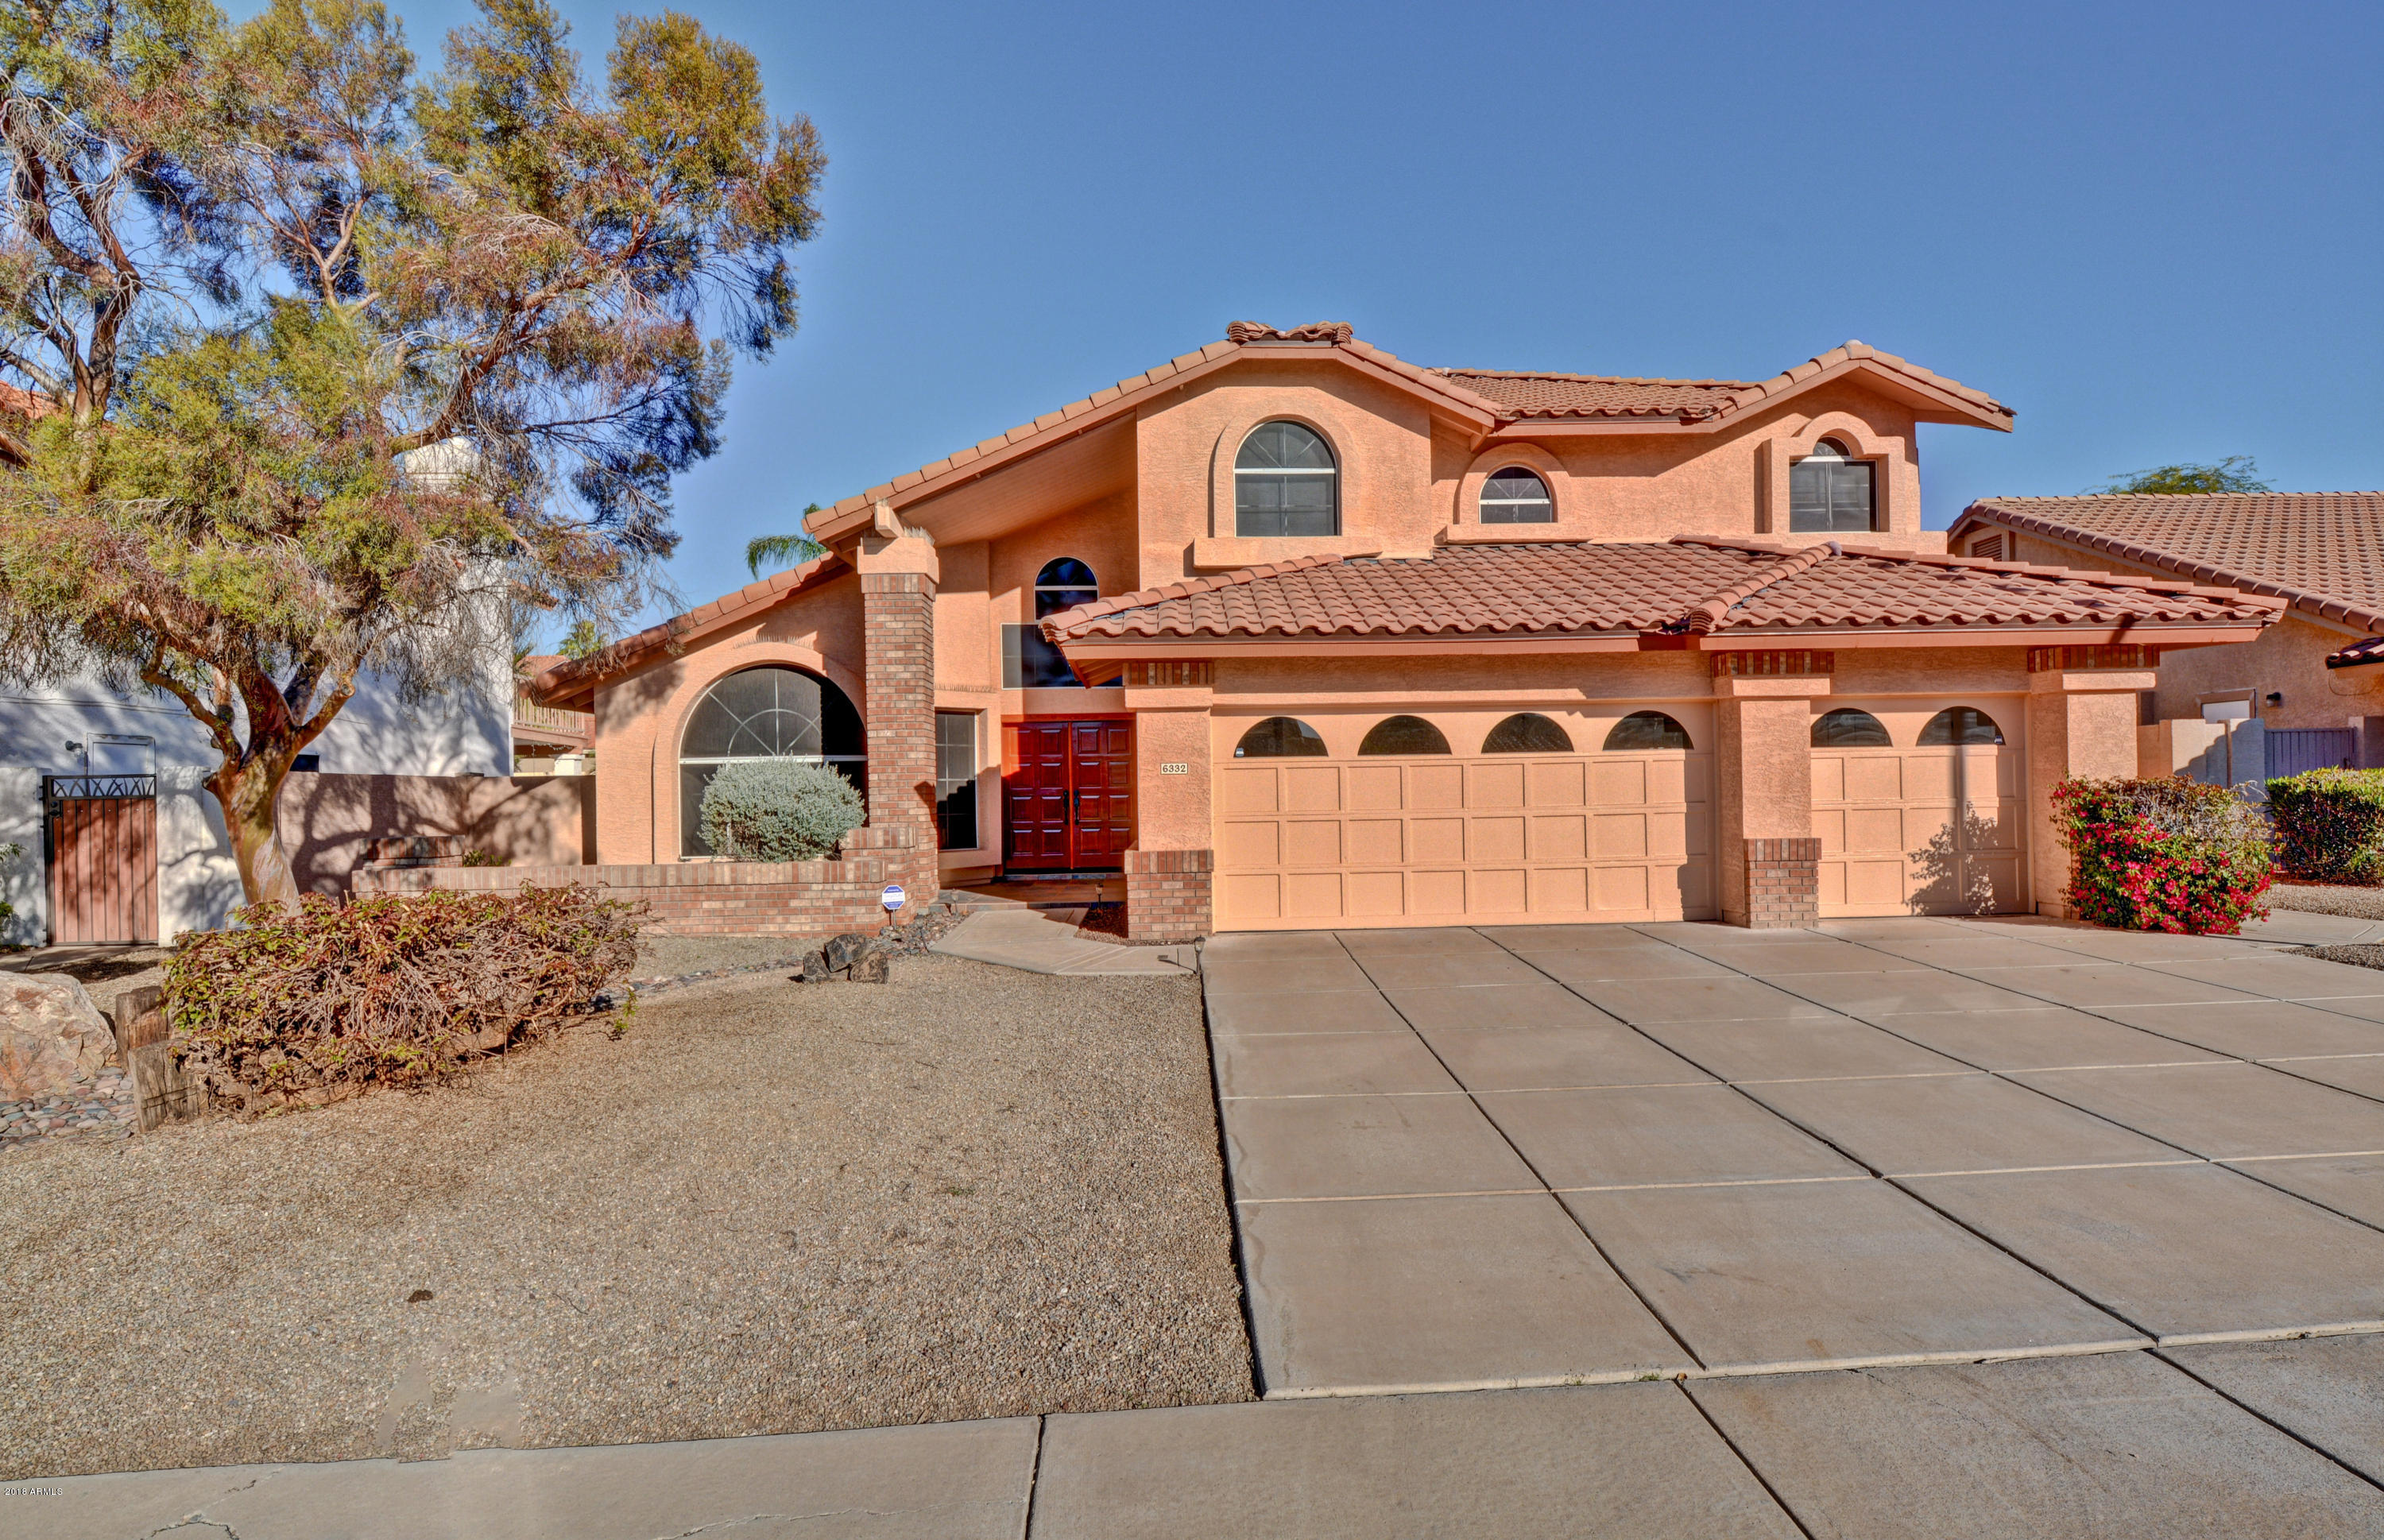 Photo of 6332 W MELINDA Lane, Glendale, AZ 85308